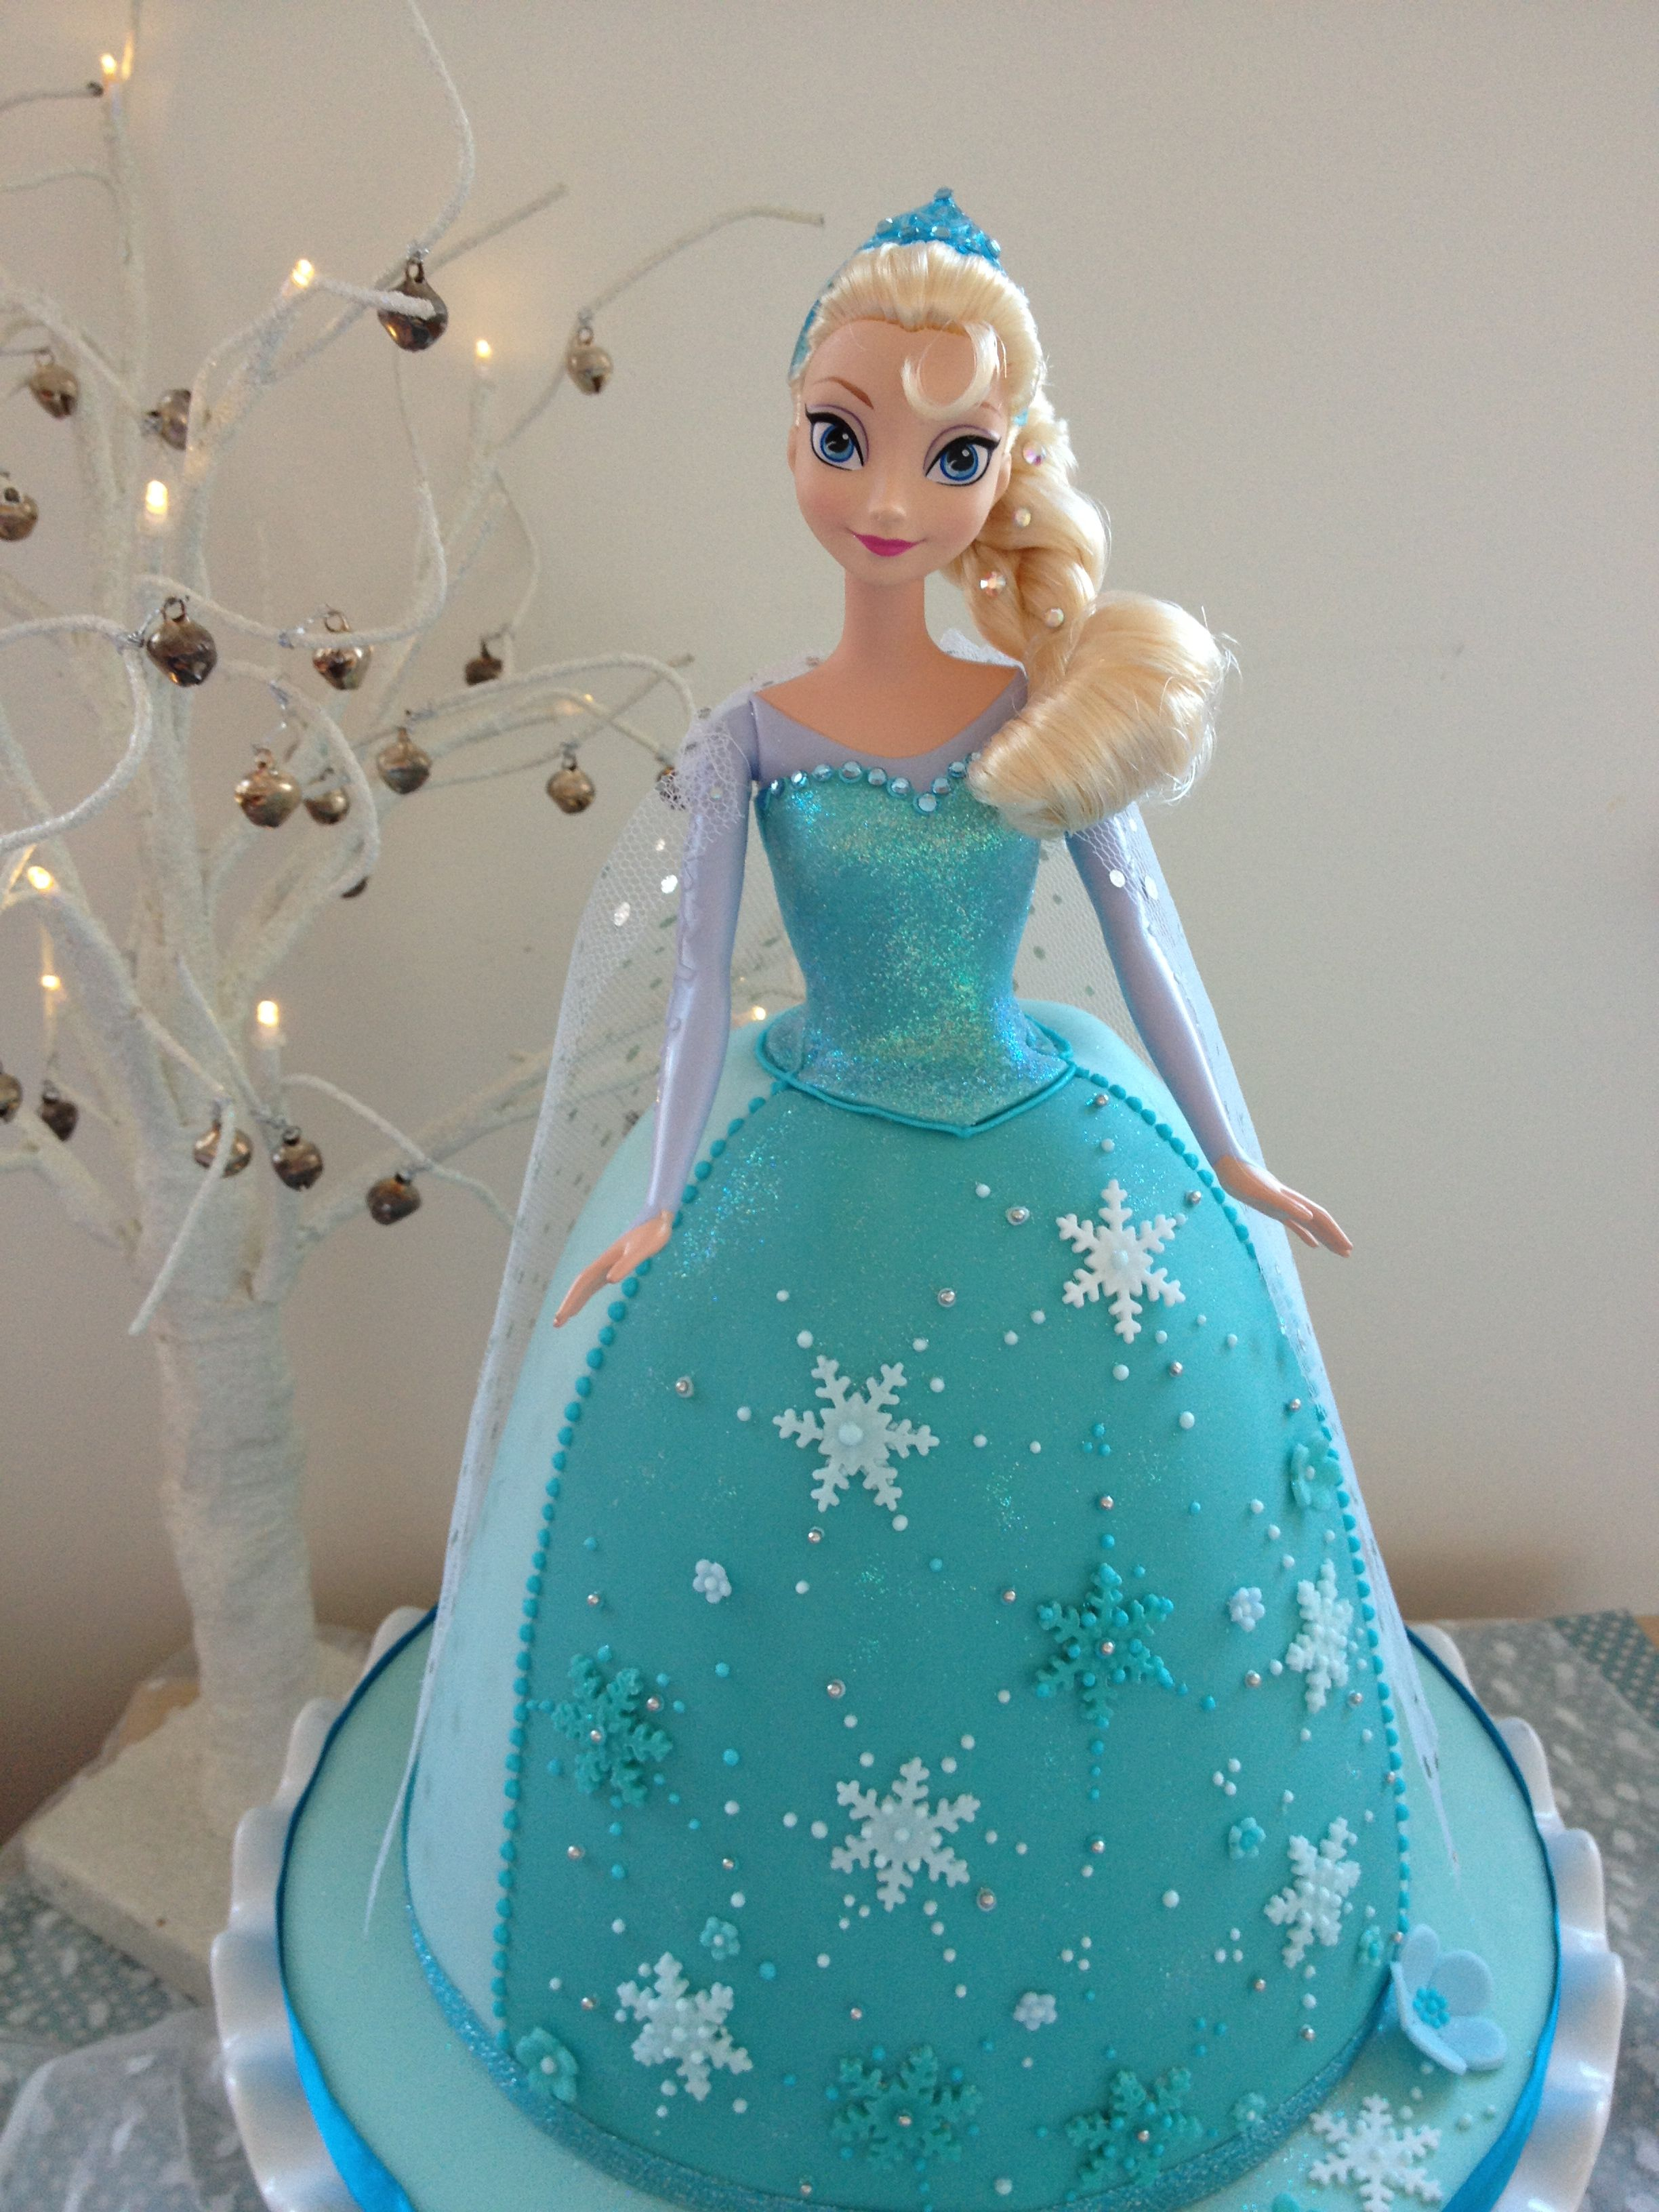 Elsa Birthday Cakes Barbie Birthday Cakes Wwwibirthdaycakebarbie Birthday Cakes